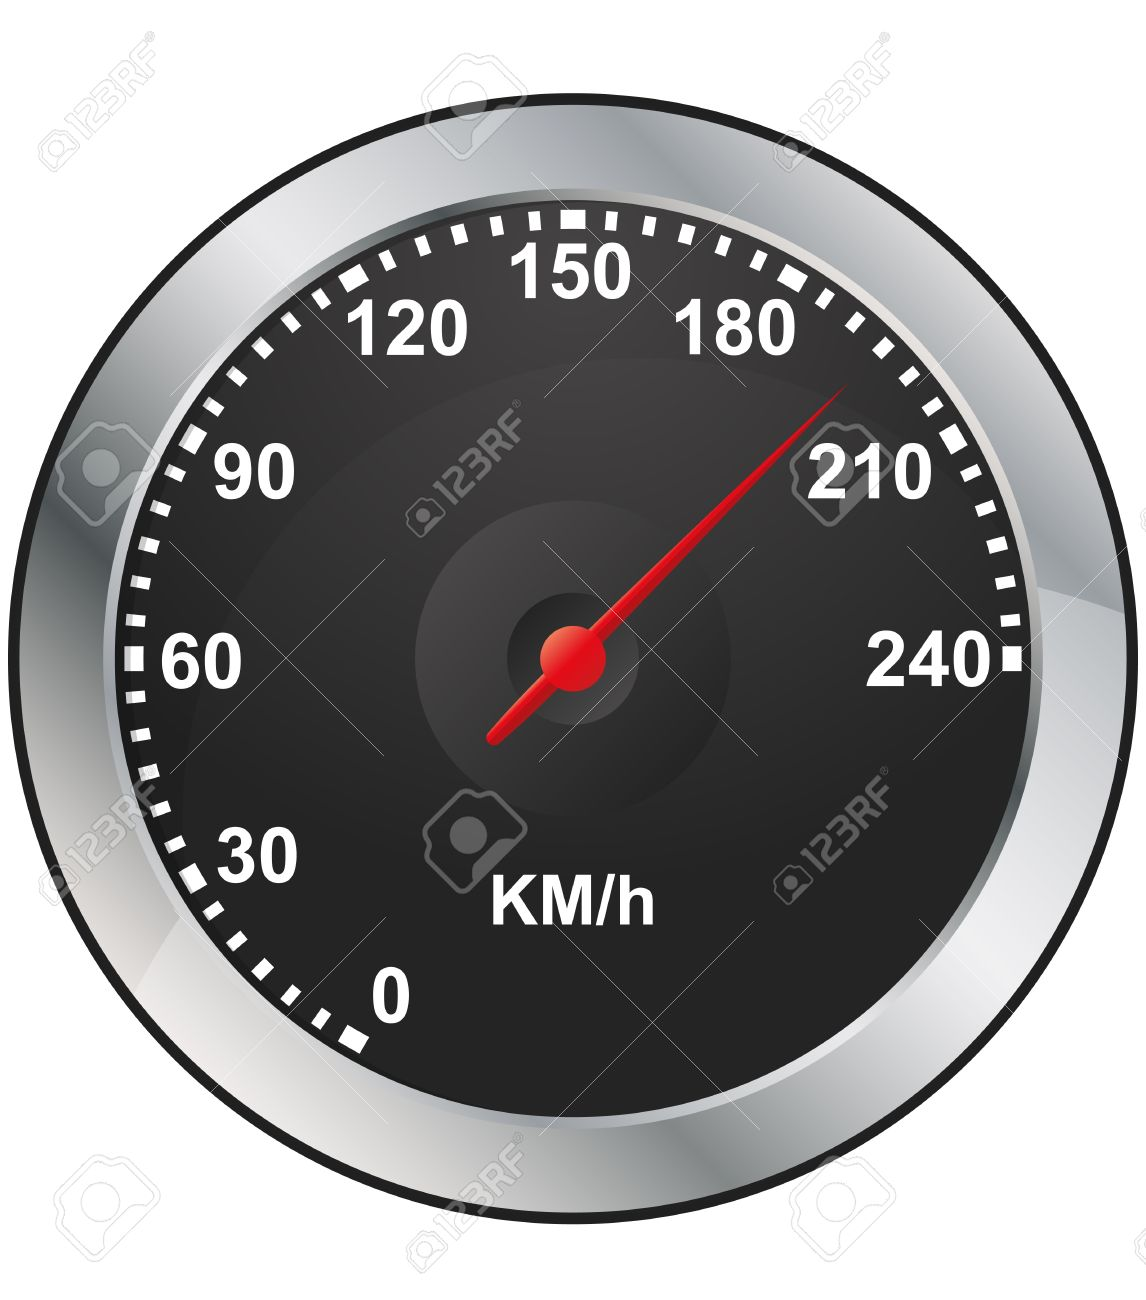 Car Dashboard Gauges Clipart.